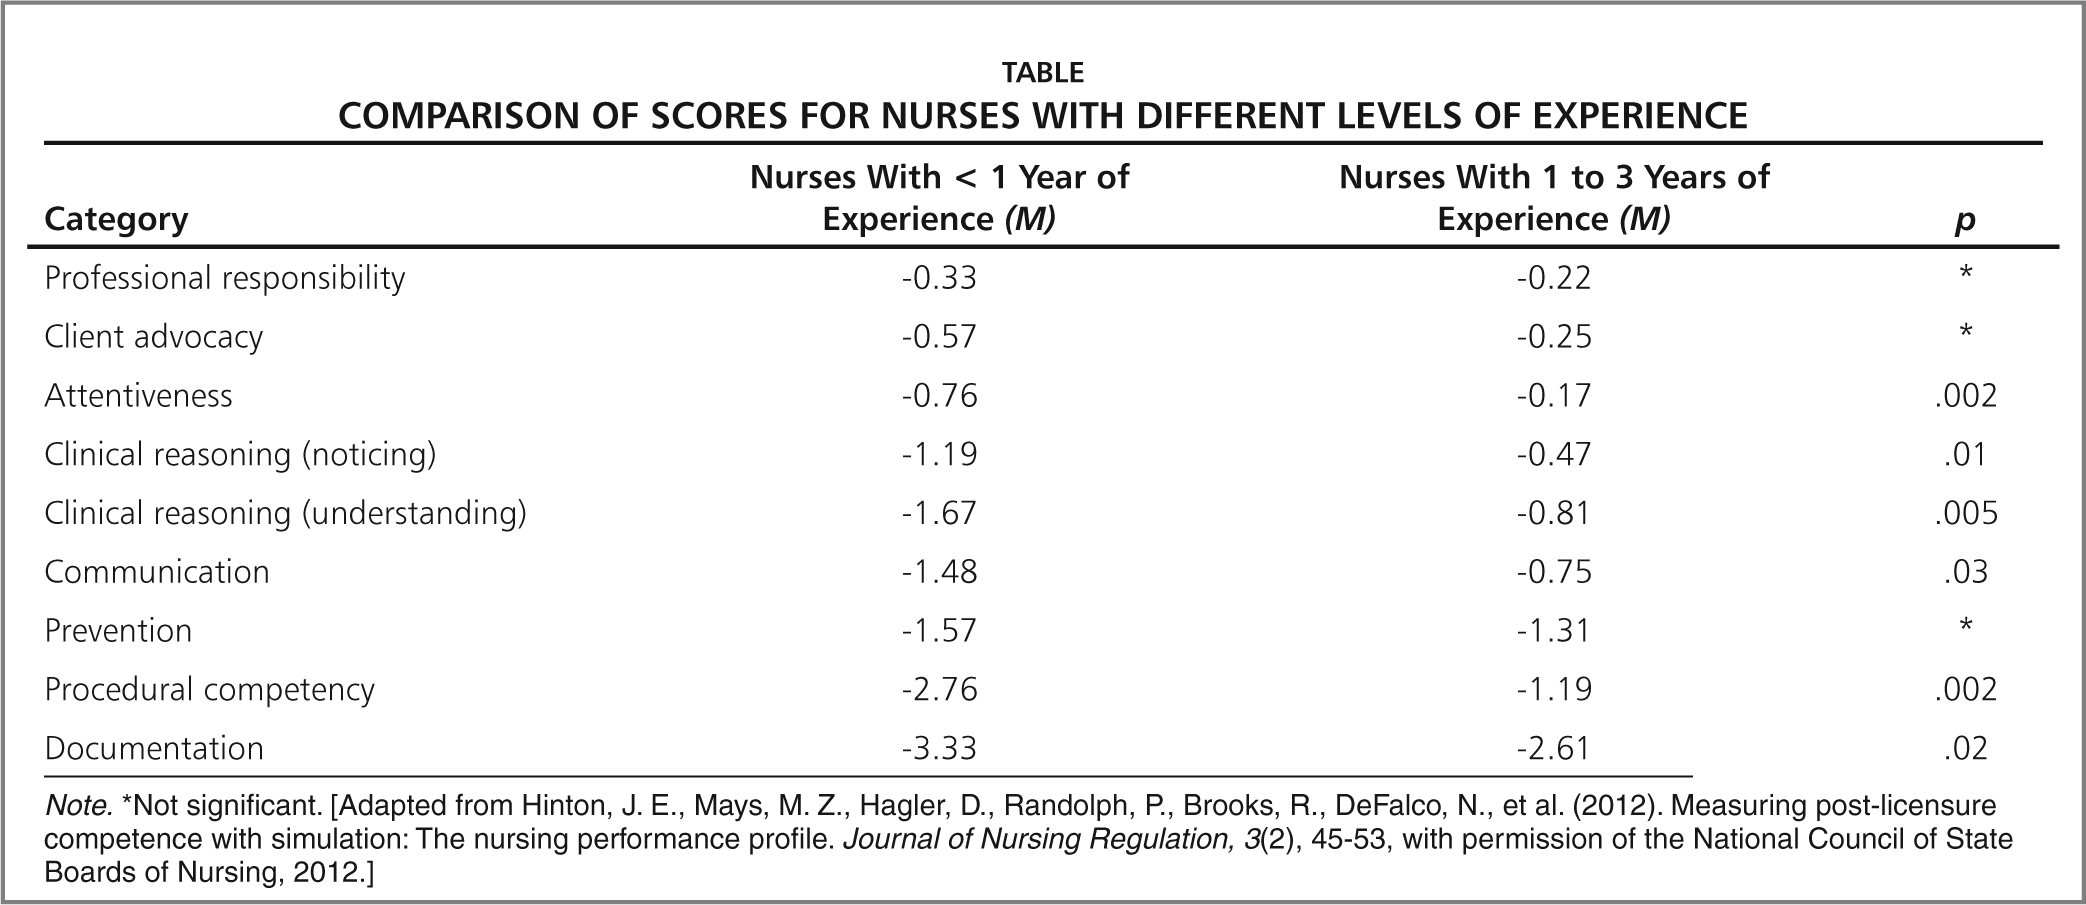 Comparison of Scores for Nurses with Different Levels of Experience